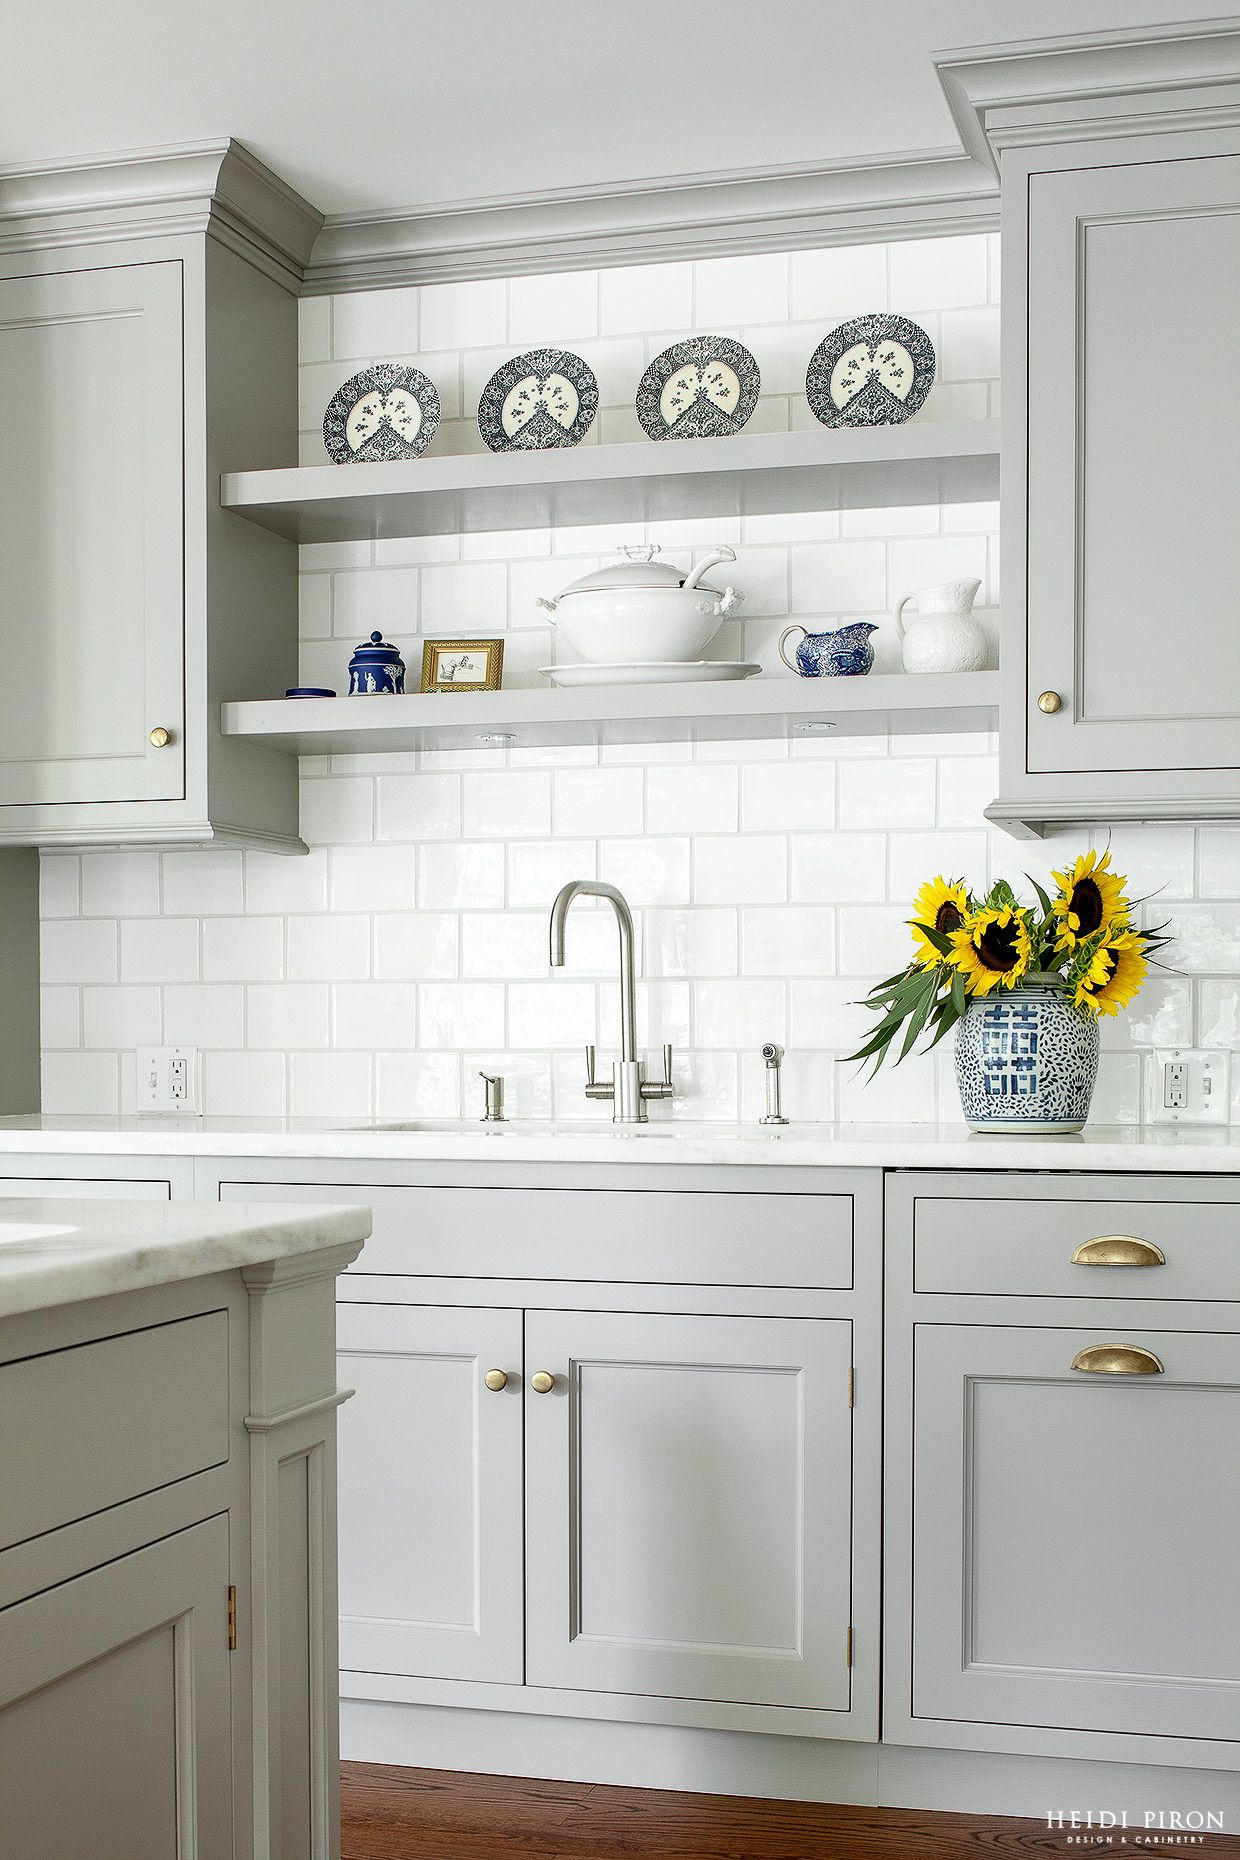 kitchen sink without cabinet ideas for cabinets heidi piron design and cabinetry traditional shelving over when no window